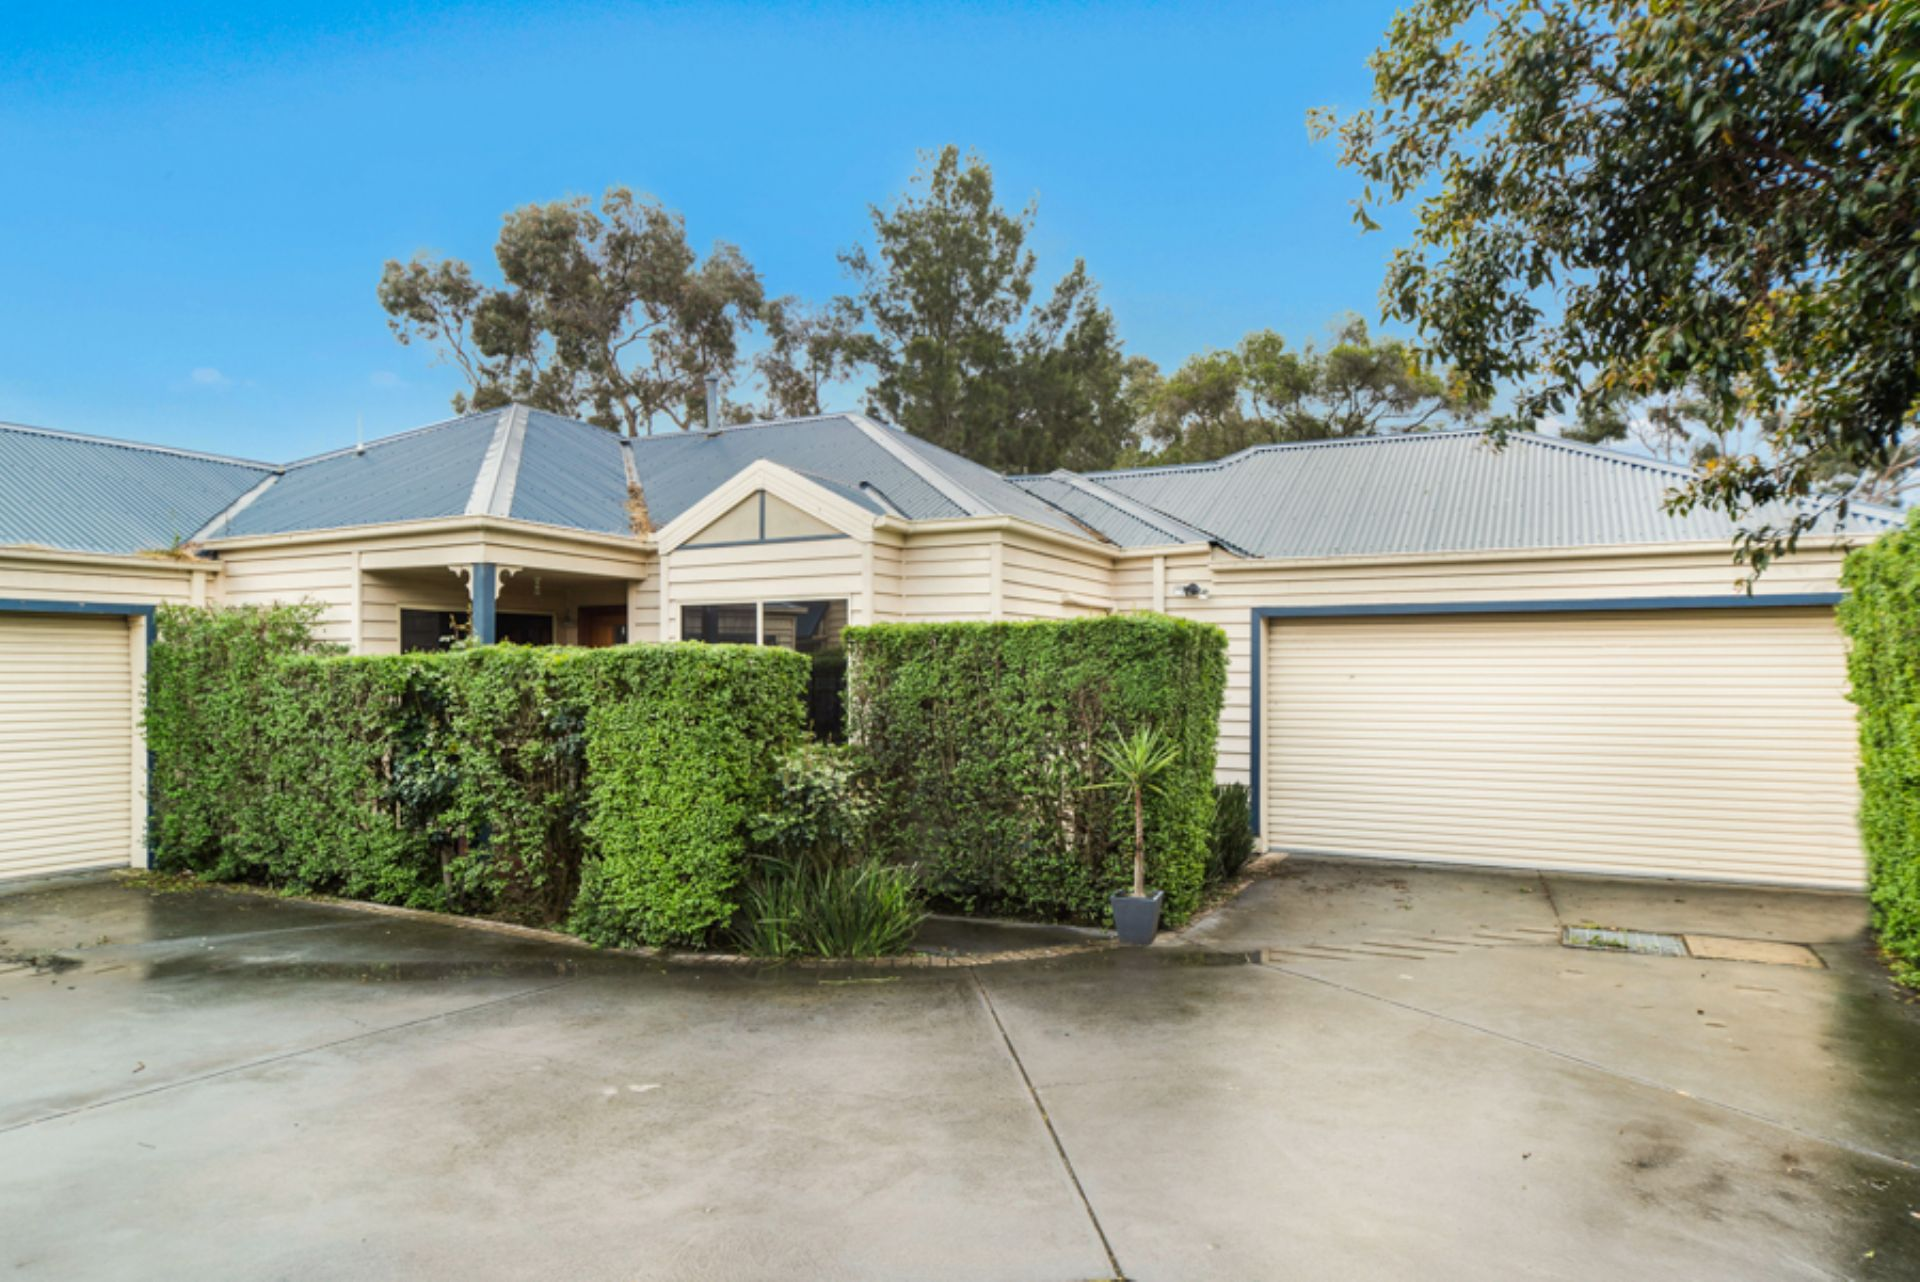 19A Normanby Street, CRANBOURNE, VIC, 3977 - Image